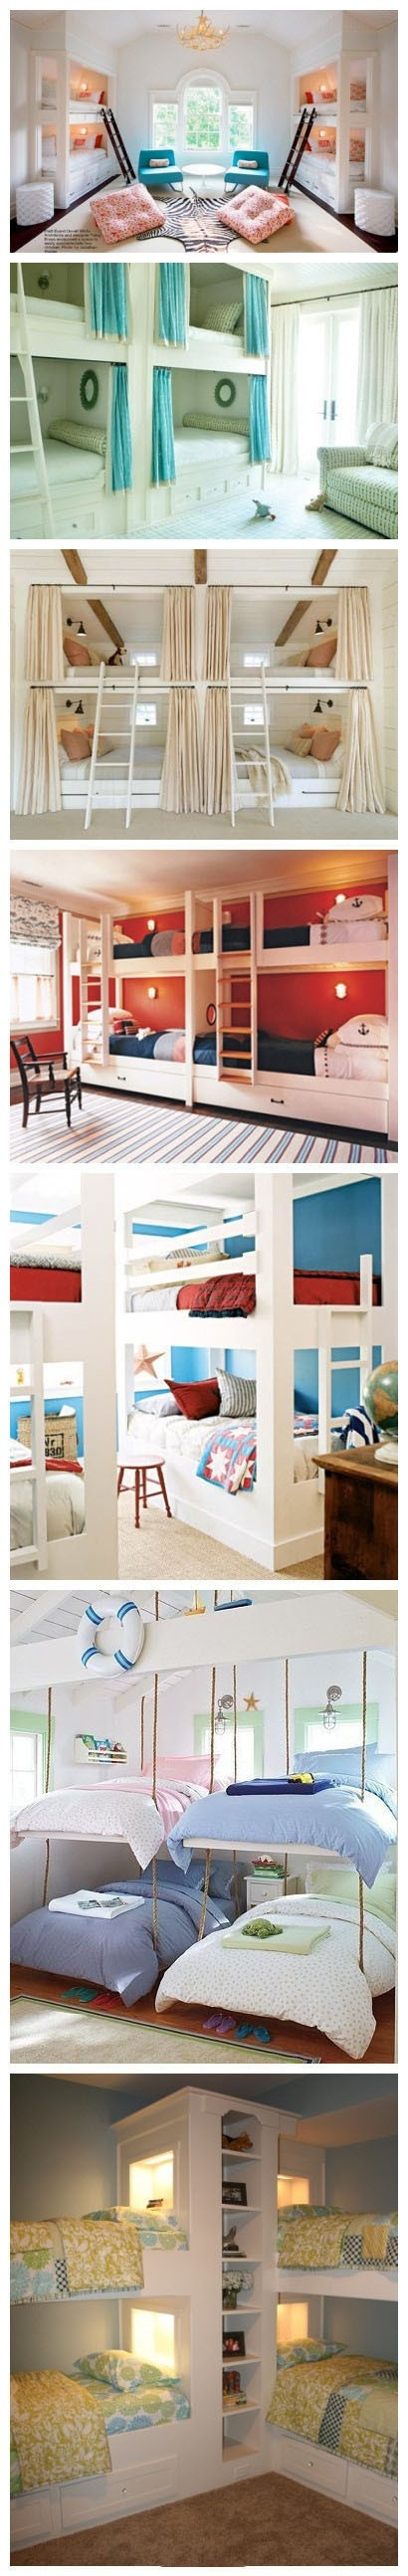 Cute ideas for kids' rooms. Plenty of space for sleepovers!